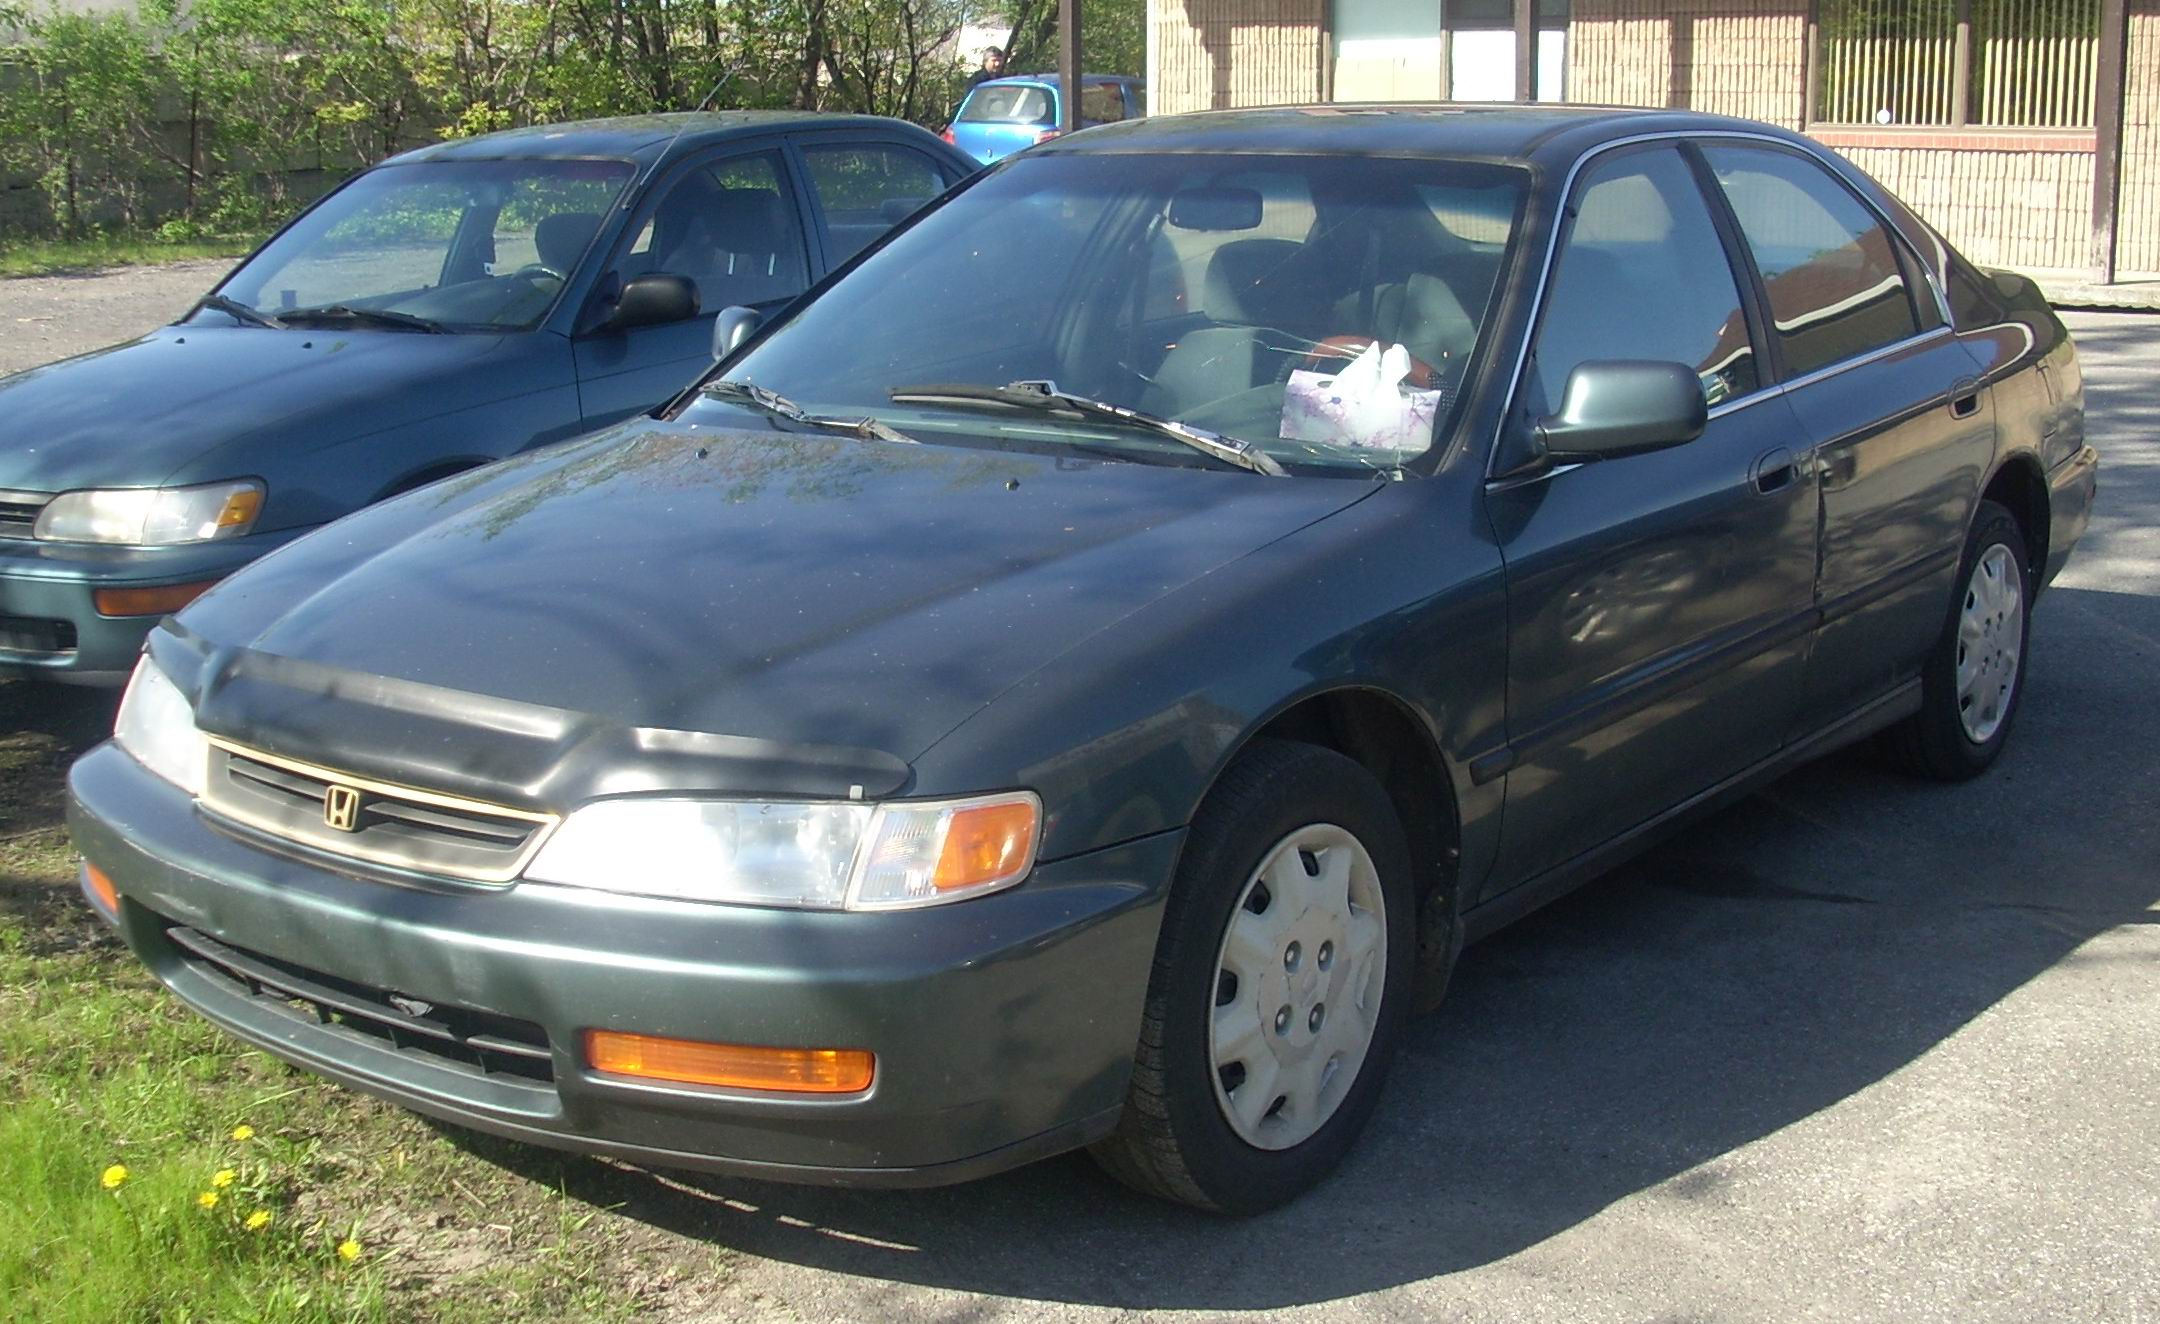 File:'96-'97 Honda Accord.JPG - Wikimedia Commons